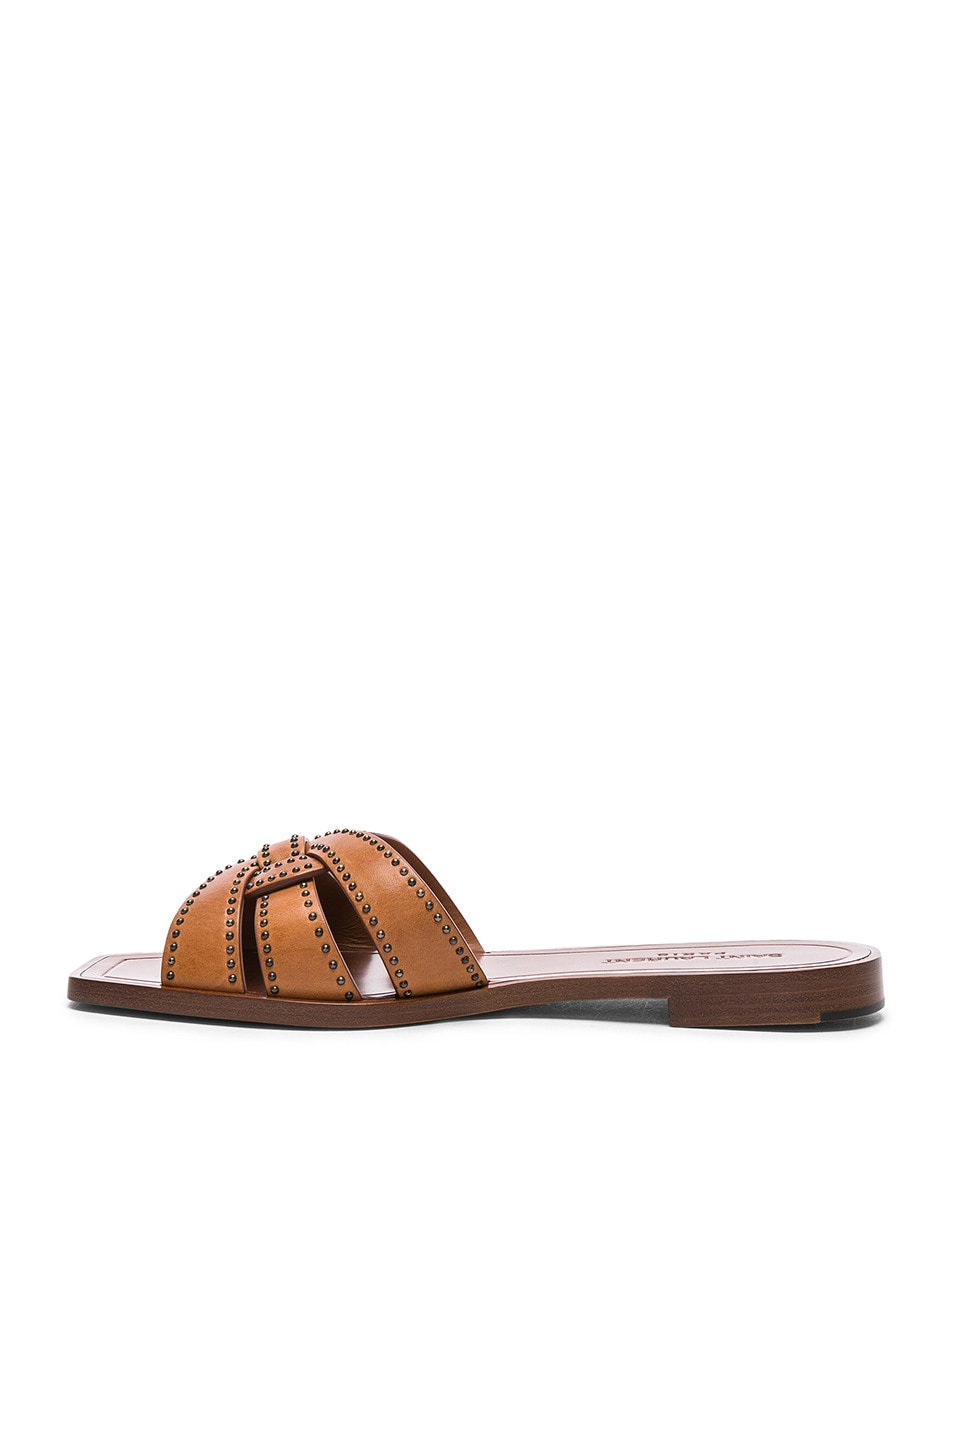 Image 5 of Saint Laurent Studded Leather Nu Pieds Slides in Amber